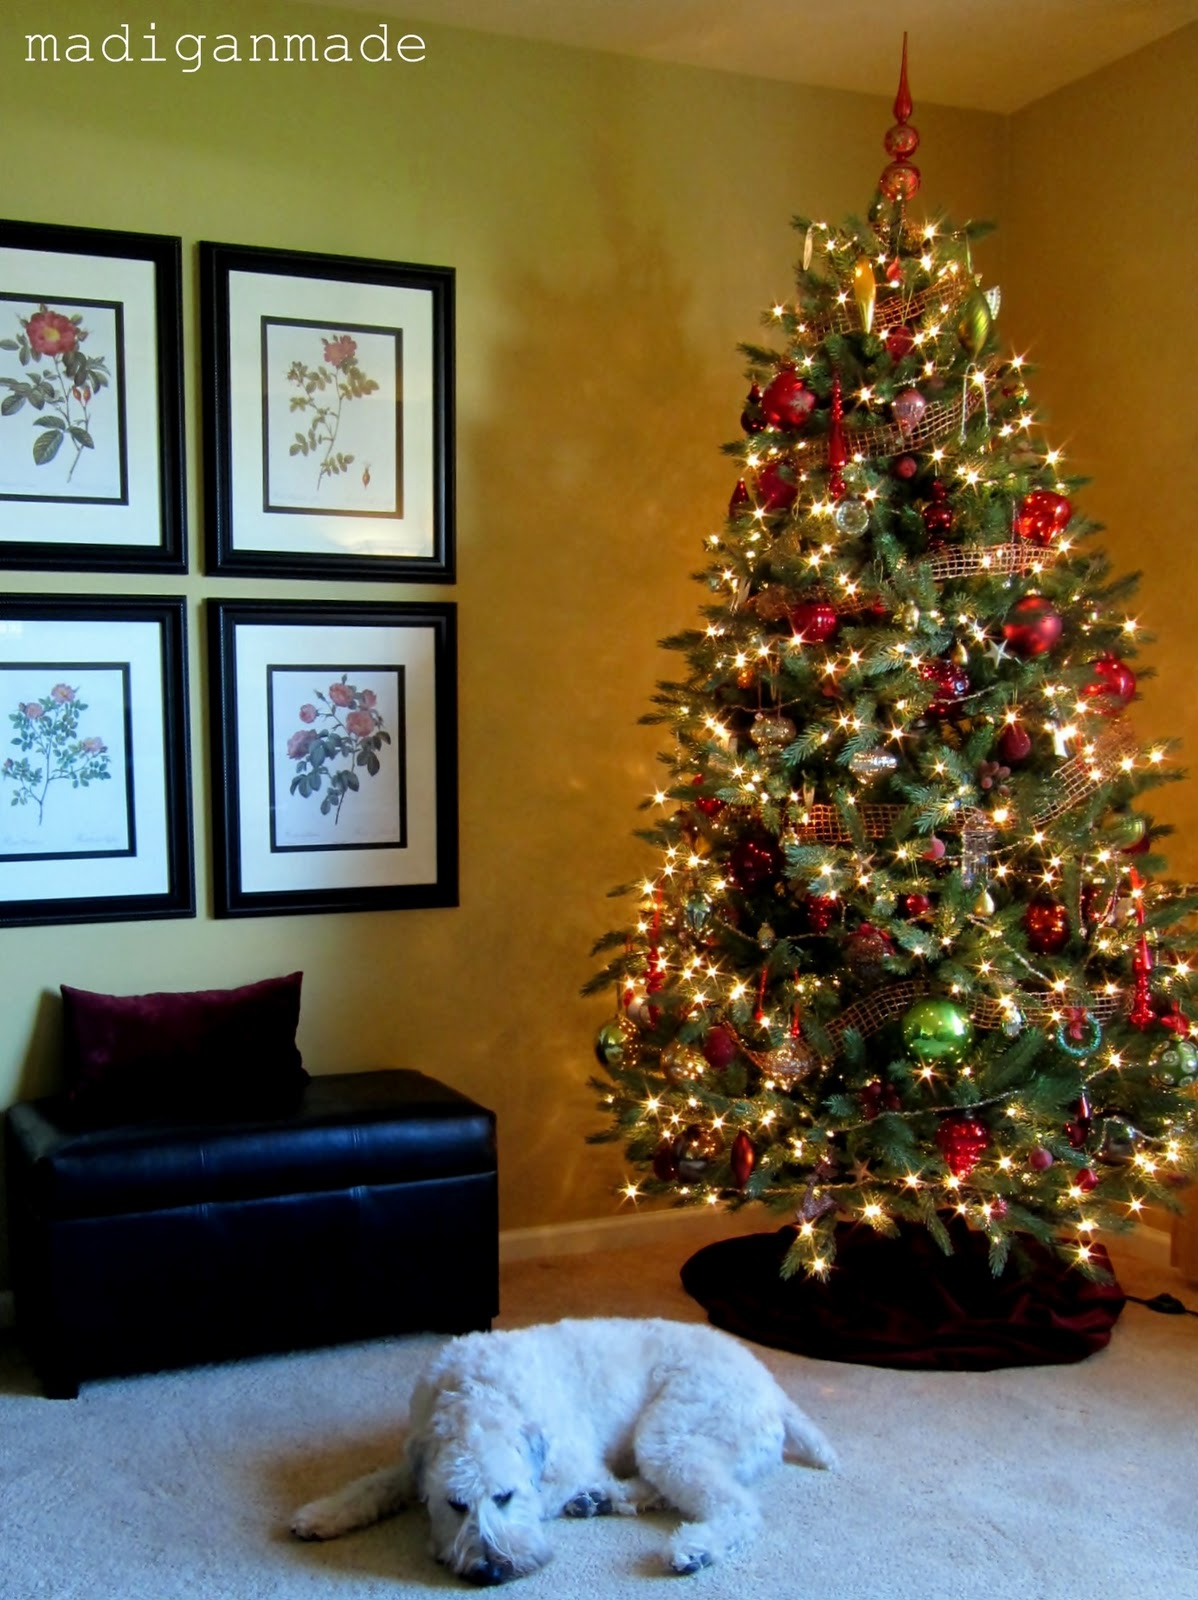 10 simple diy holiday ideas   gifts  crafts  d u00e9cor